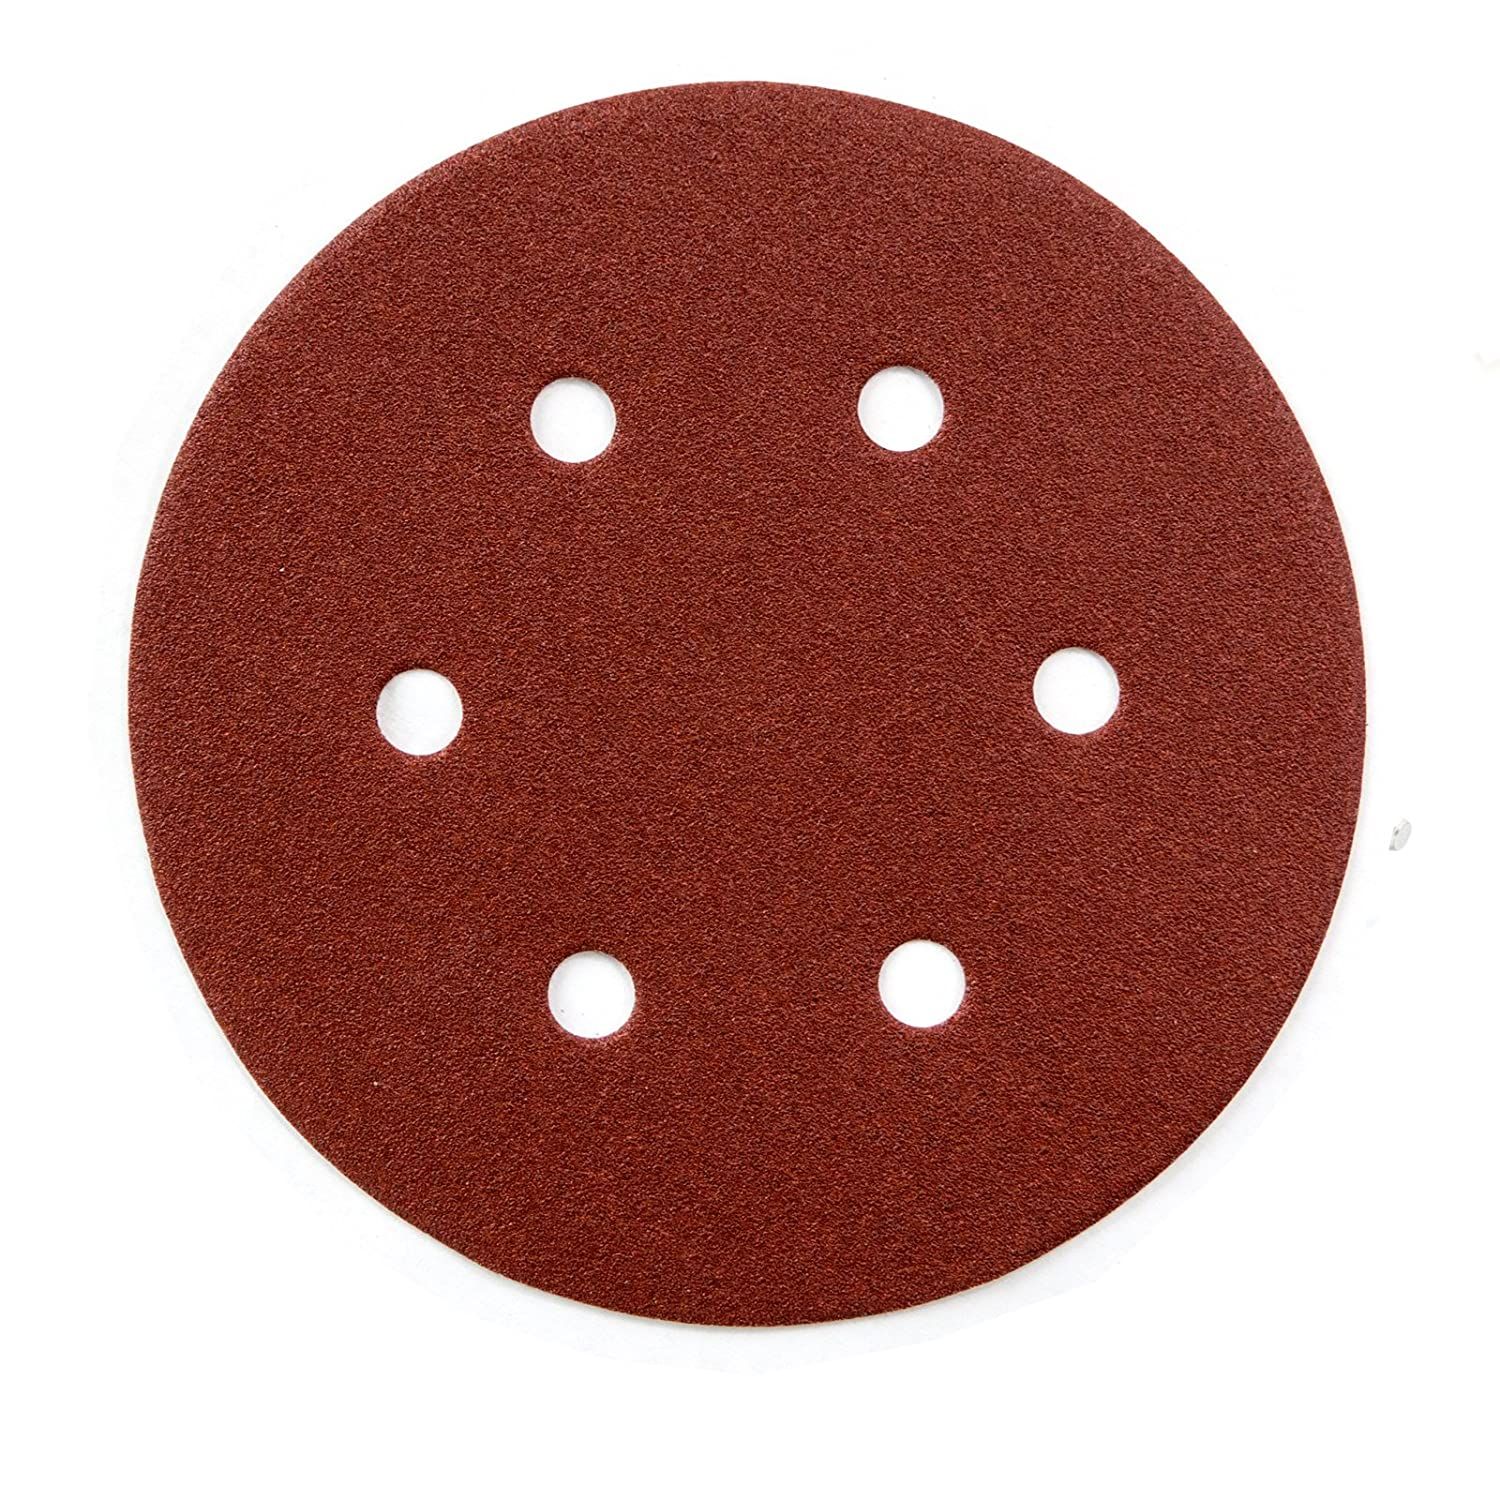 POWERTEC 45224 A/O Hook and Loop 6 Hole Disc, 6-Inch, 240 Grit, 25 PK